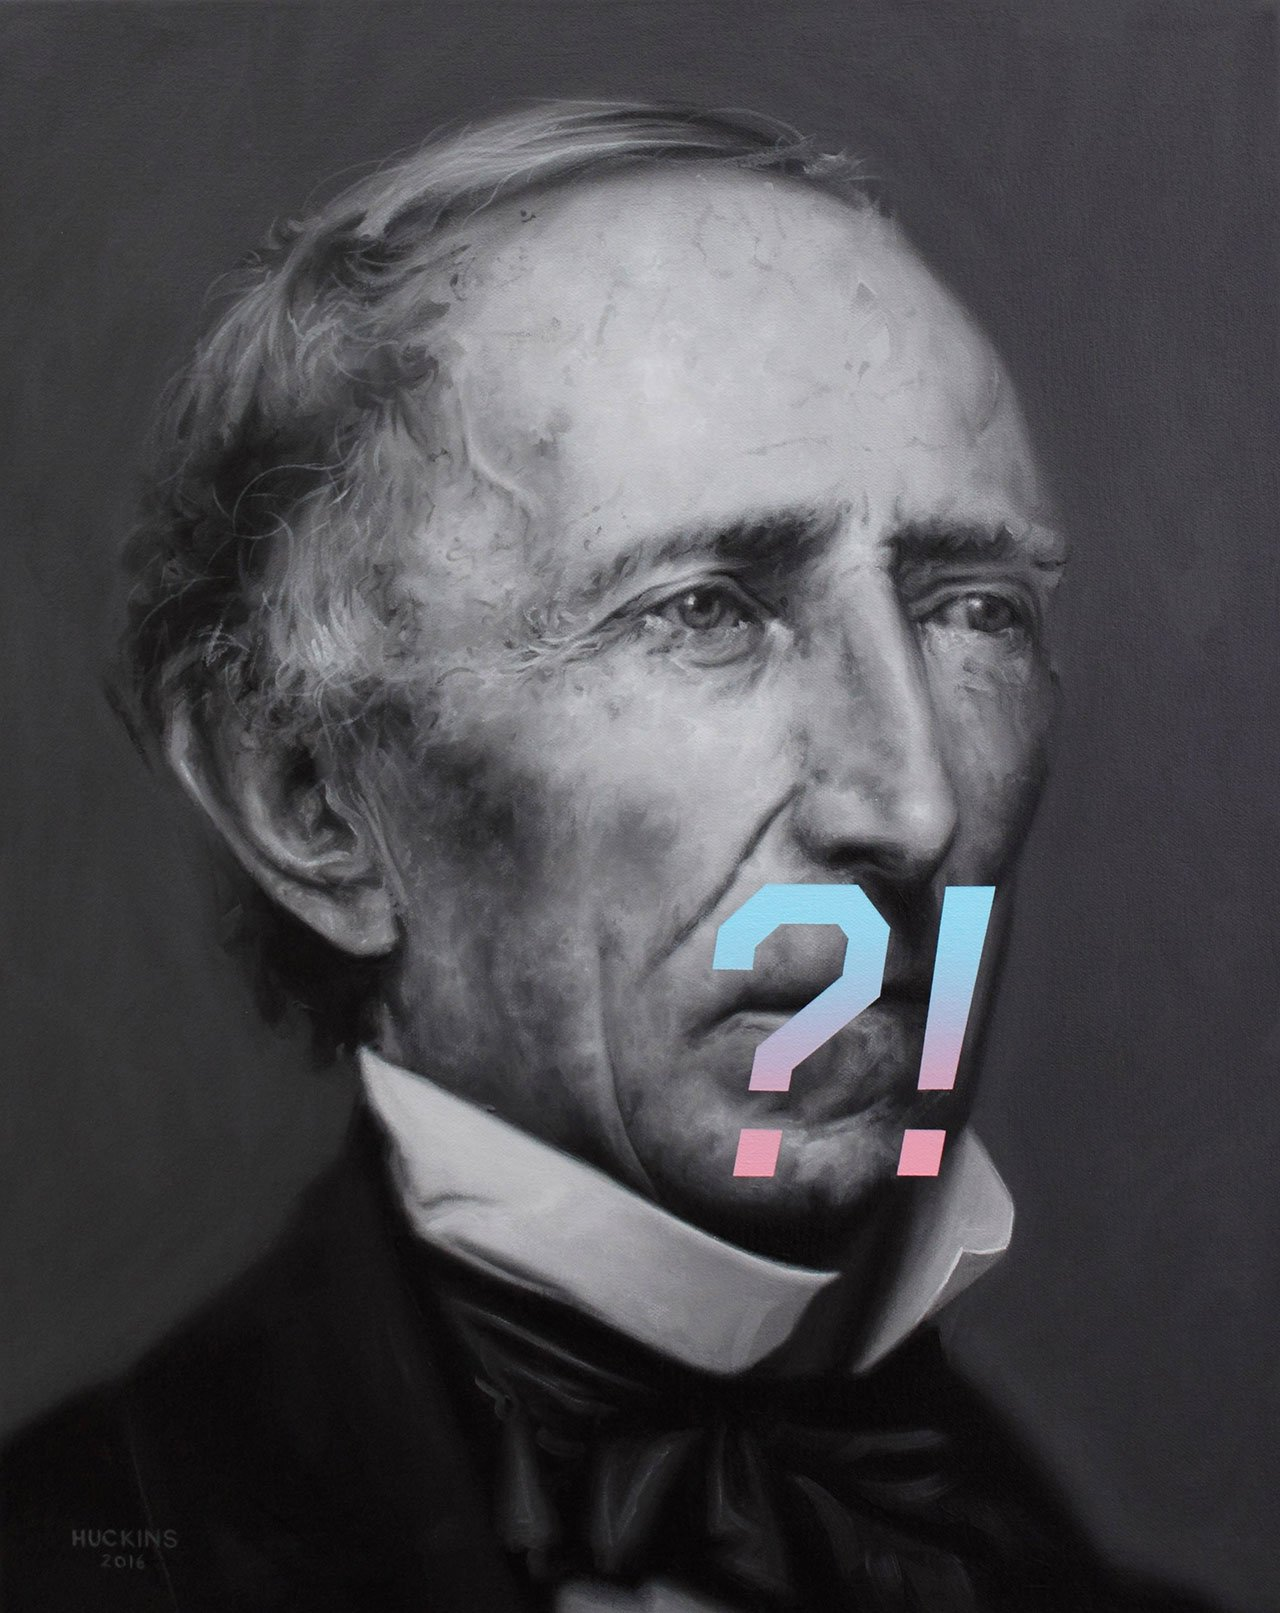 Shawn Huckins, John Tyler's Expression Of Surprise, Confusion, or Shock, acrylic on canvas, 20 x 16 in (51 x 41 cm), 2016.